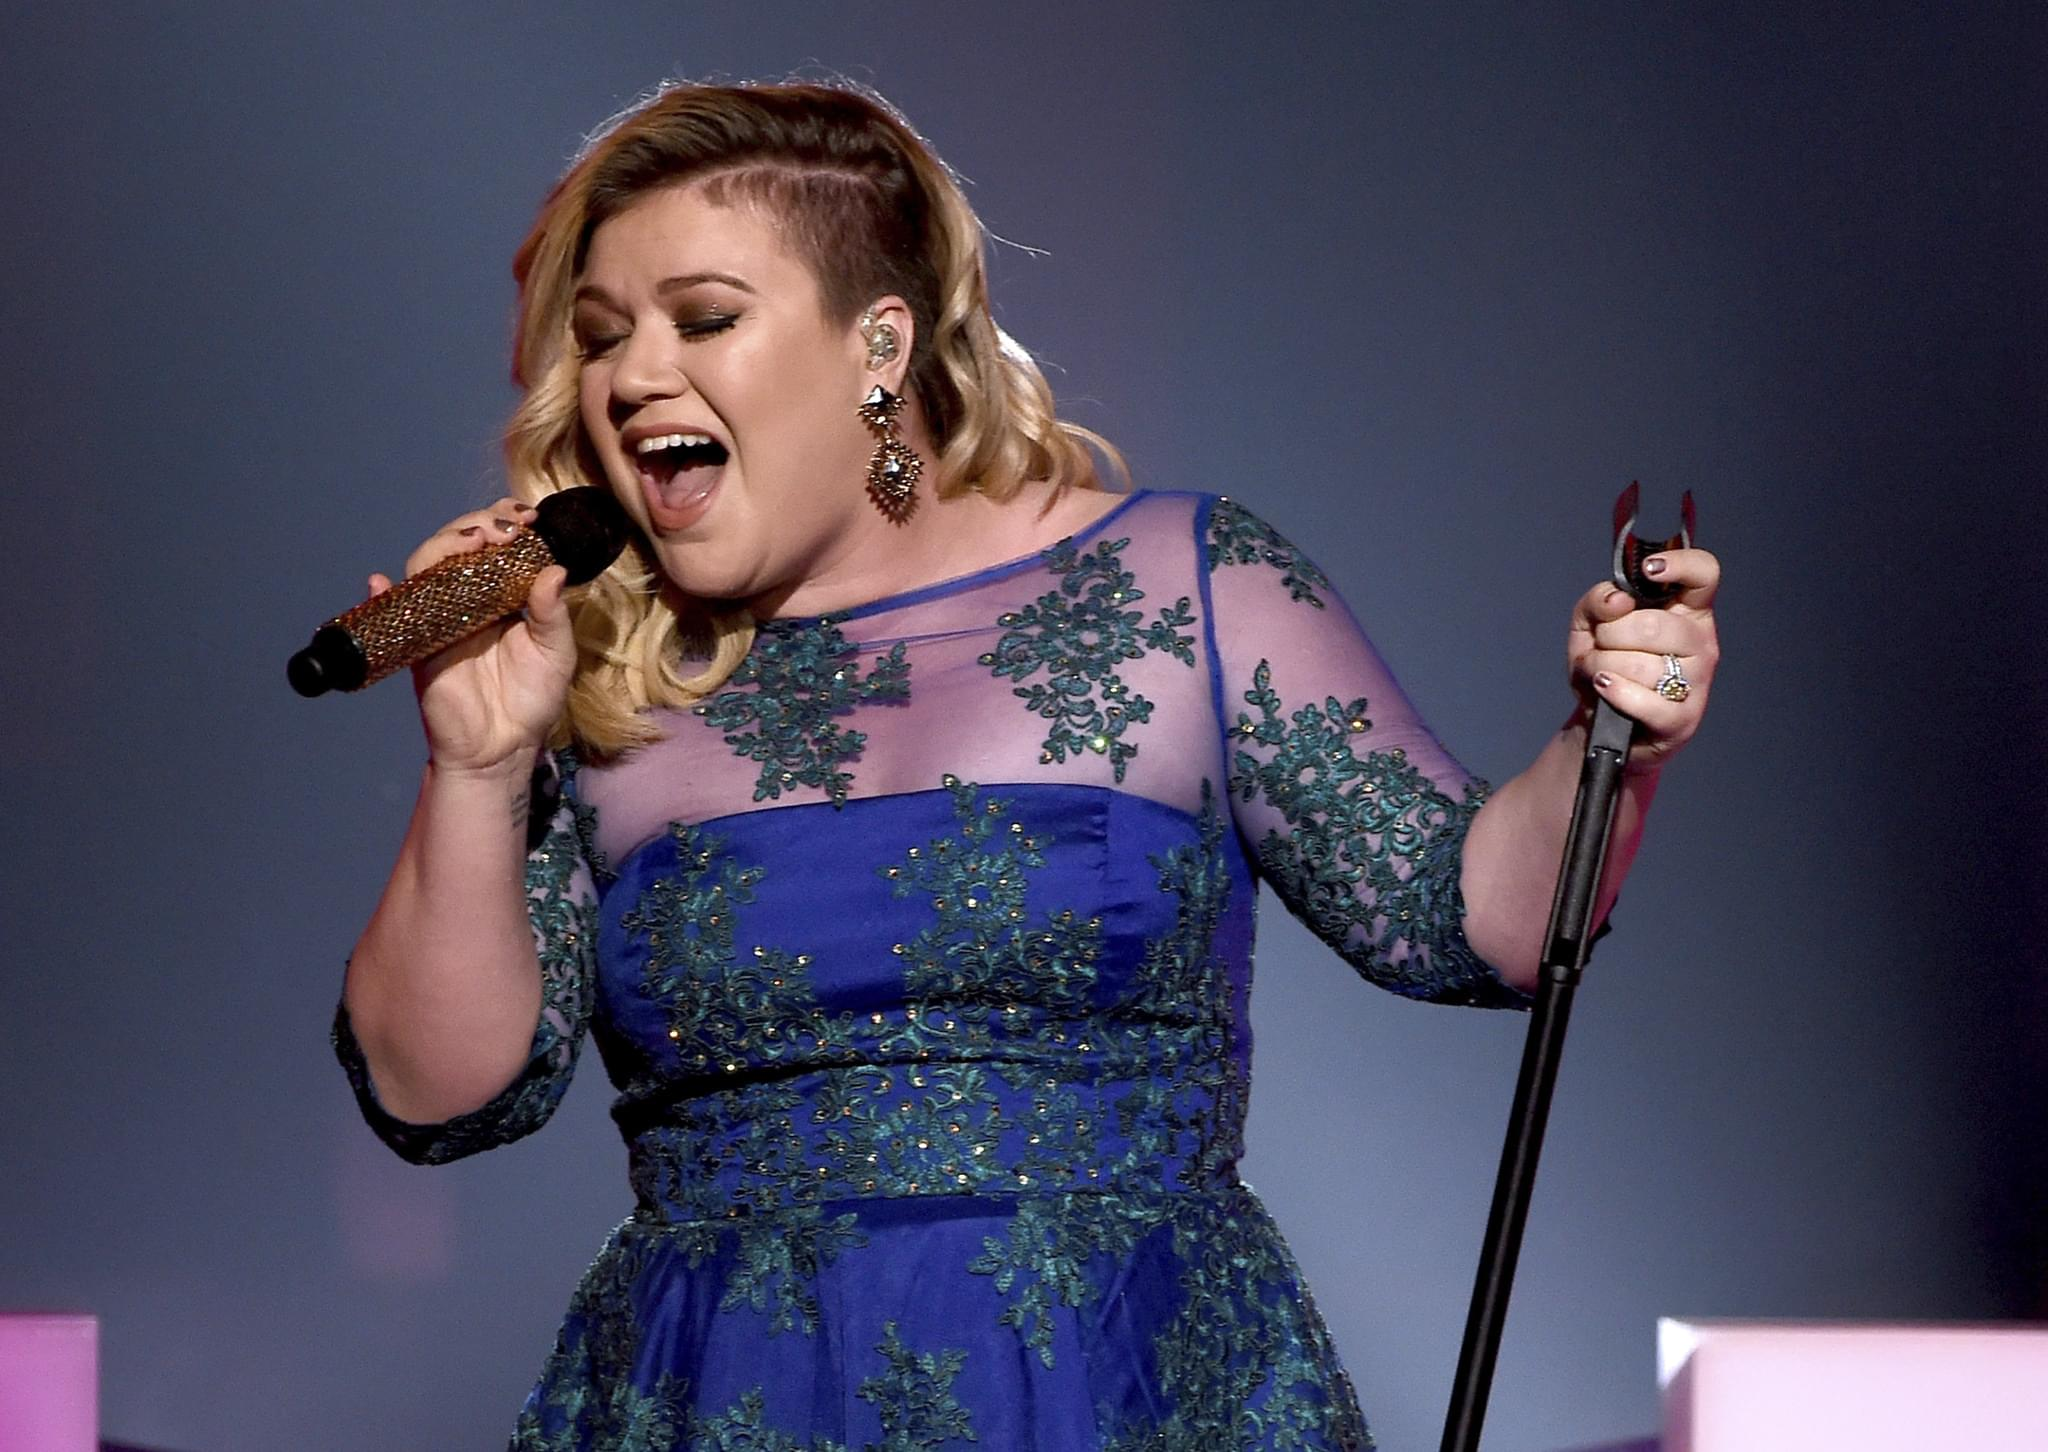 Kelly Clarkson Nominated for 7 Emmys